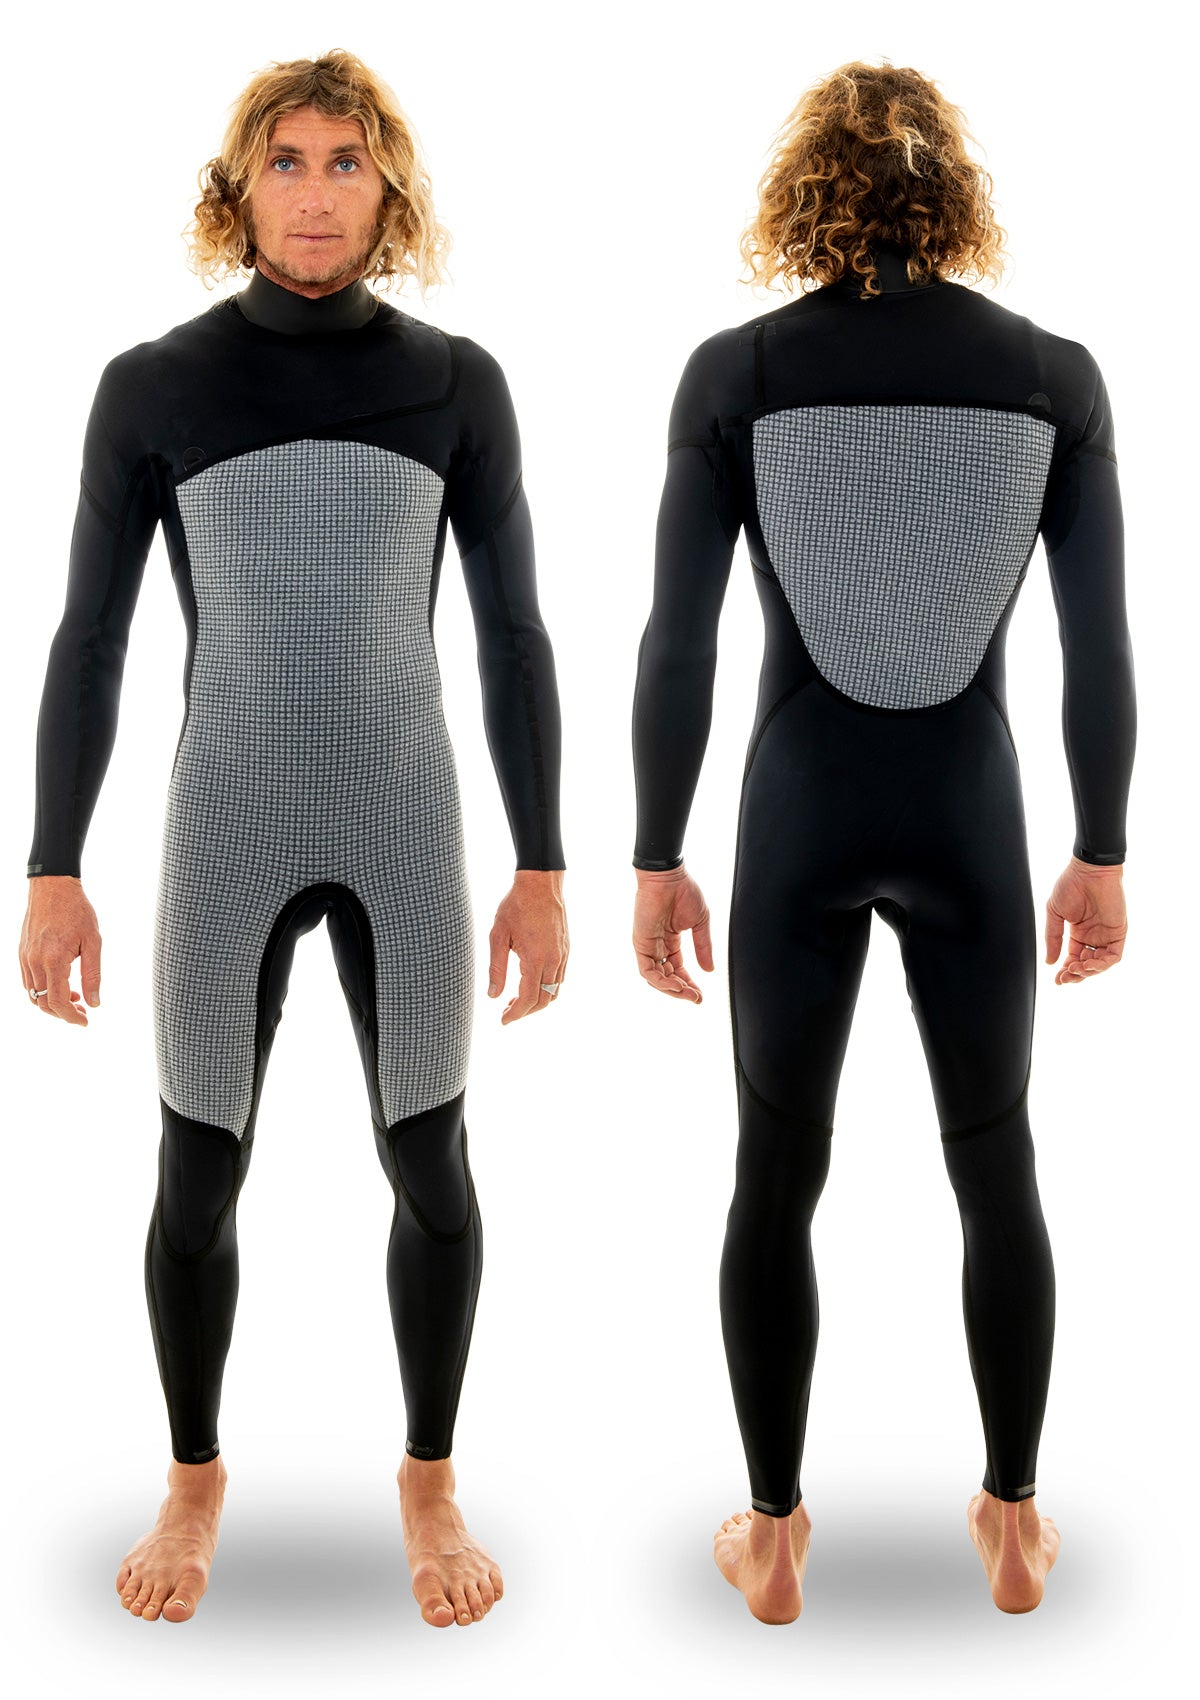 needessentials 3/2 thermal chest zip wetsuit surfing wetsuit winter black